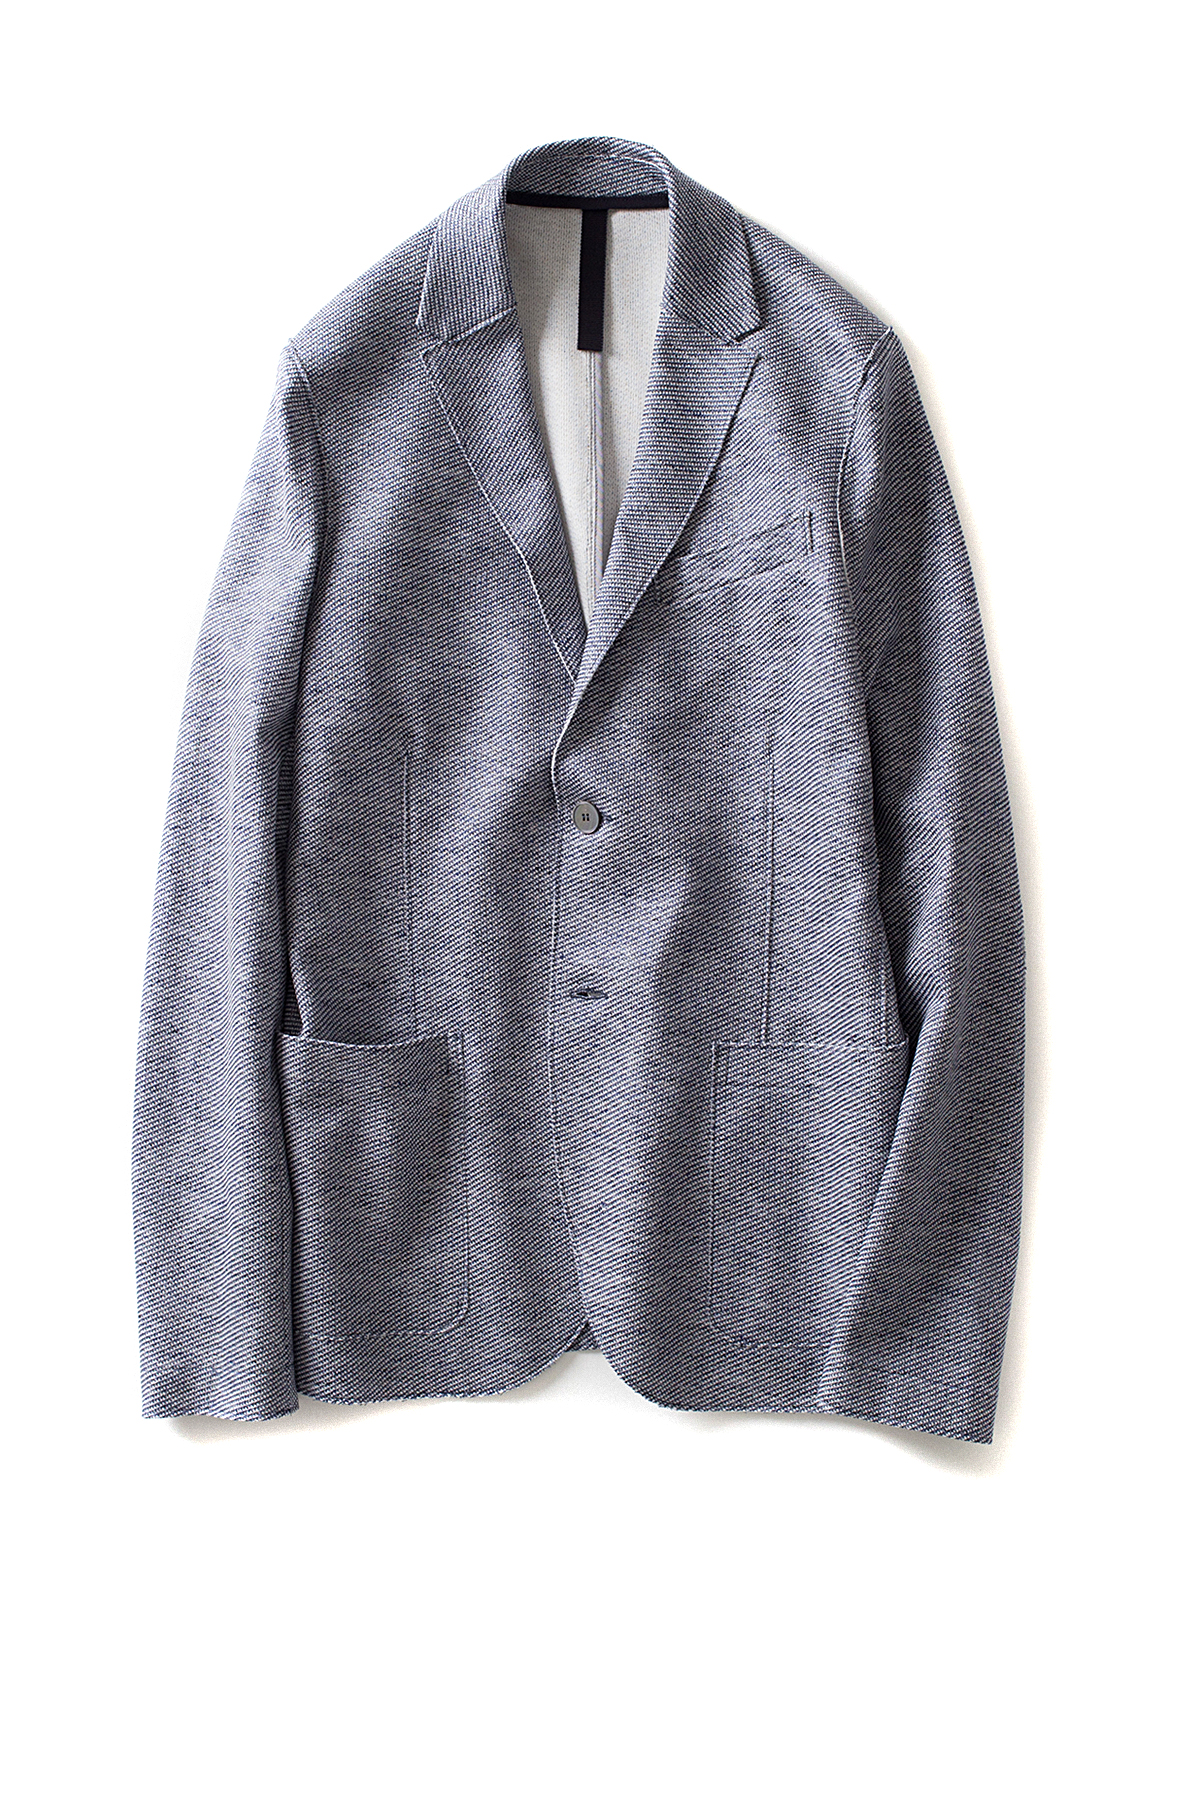 Harris Wharf London : 2b. vented blazer Bicolour Linen (Light Blue)